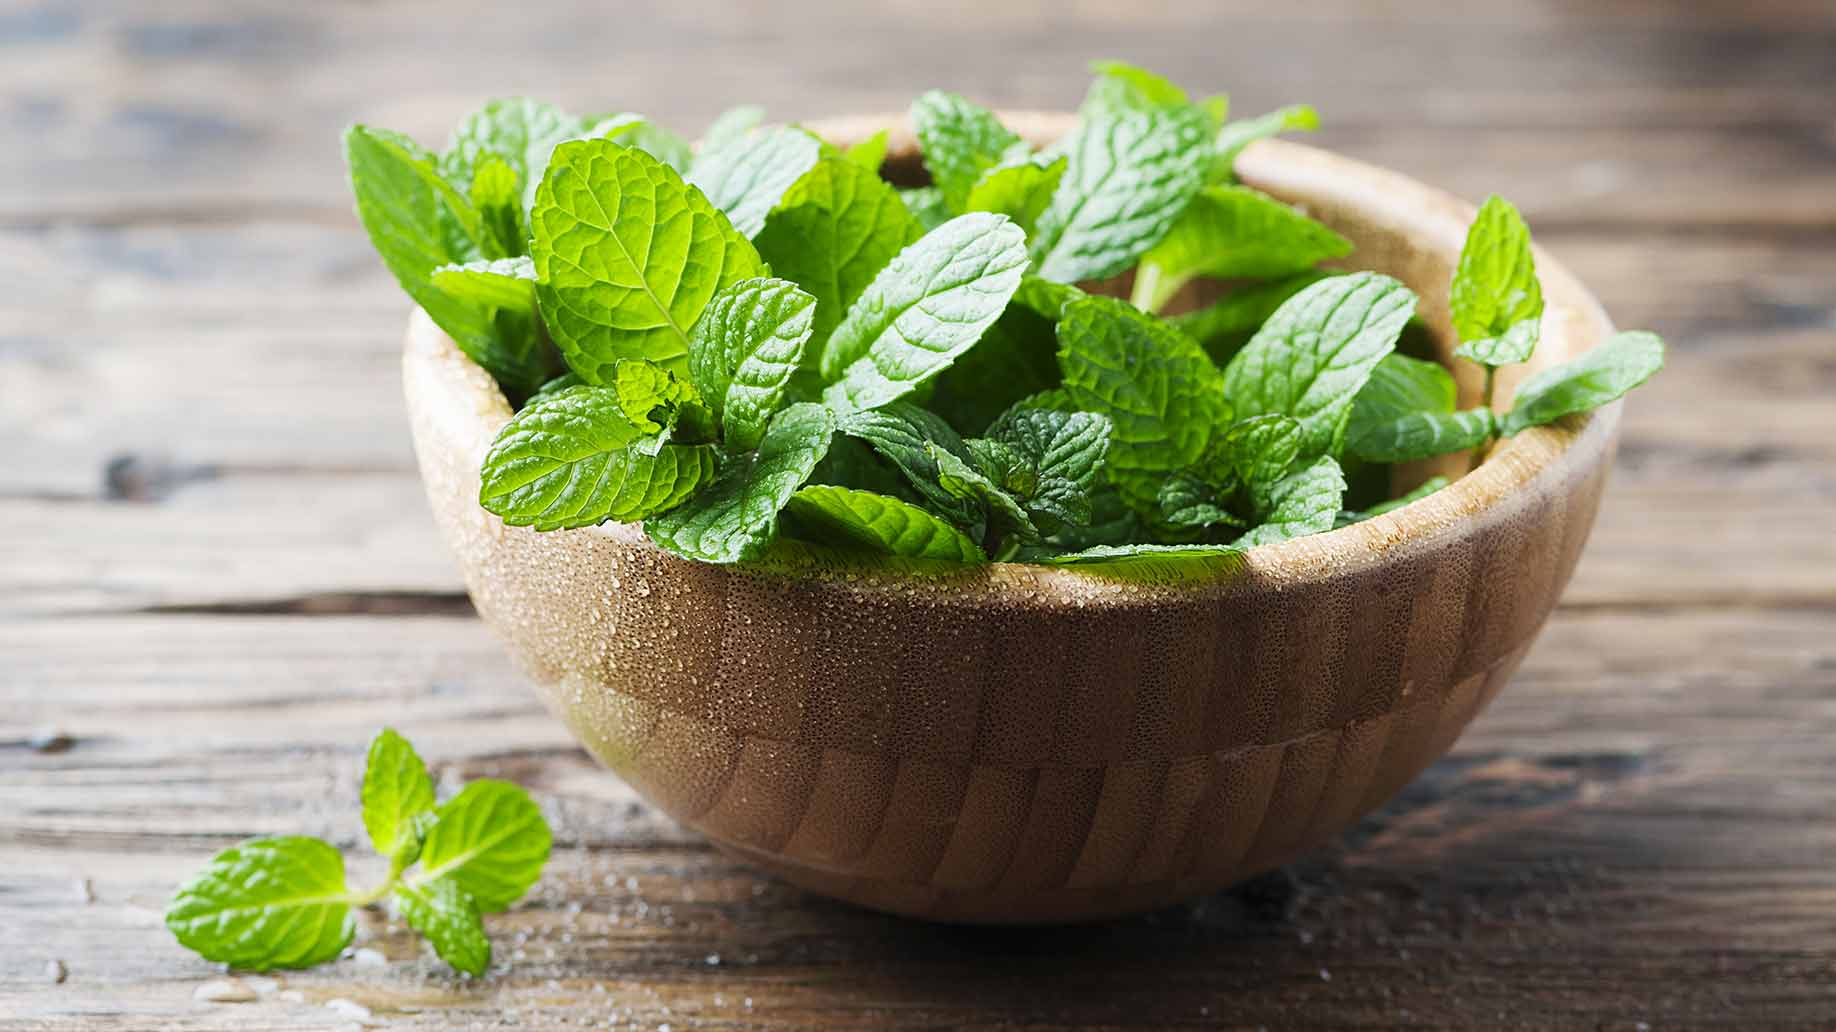 peppermint leaves hair growth natural shampoo ingredient